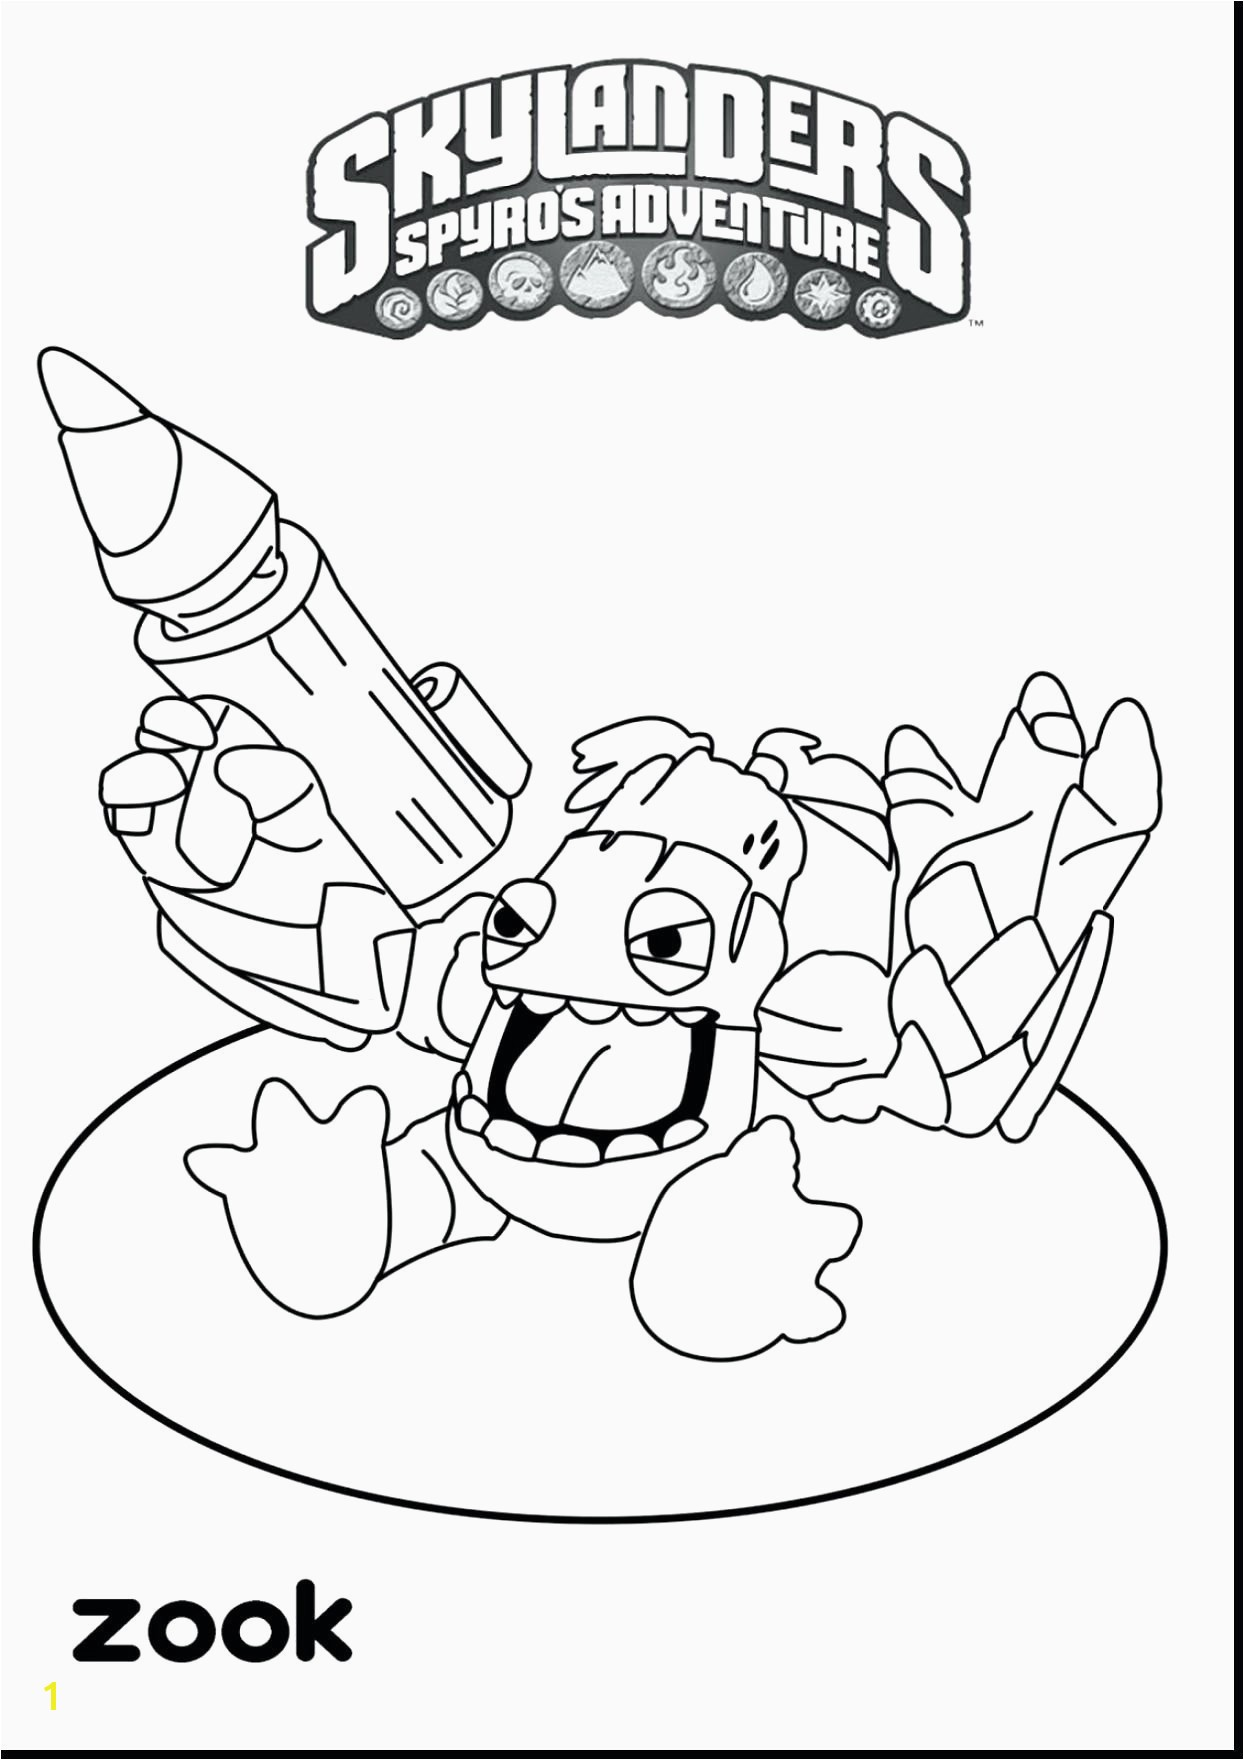 14 Best Navy Coloring Pages for Kids Stock